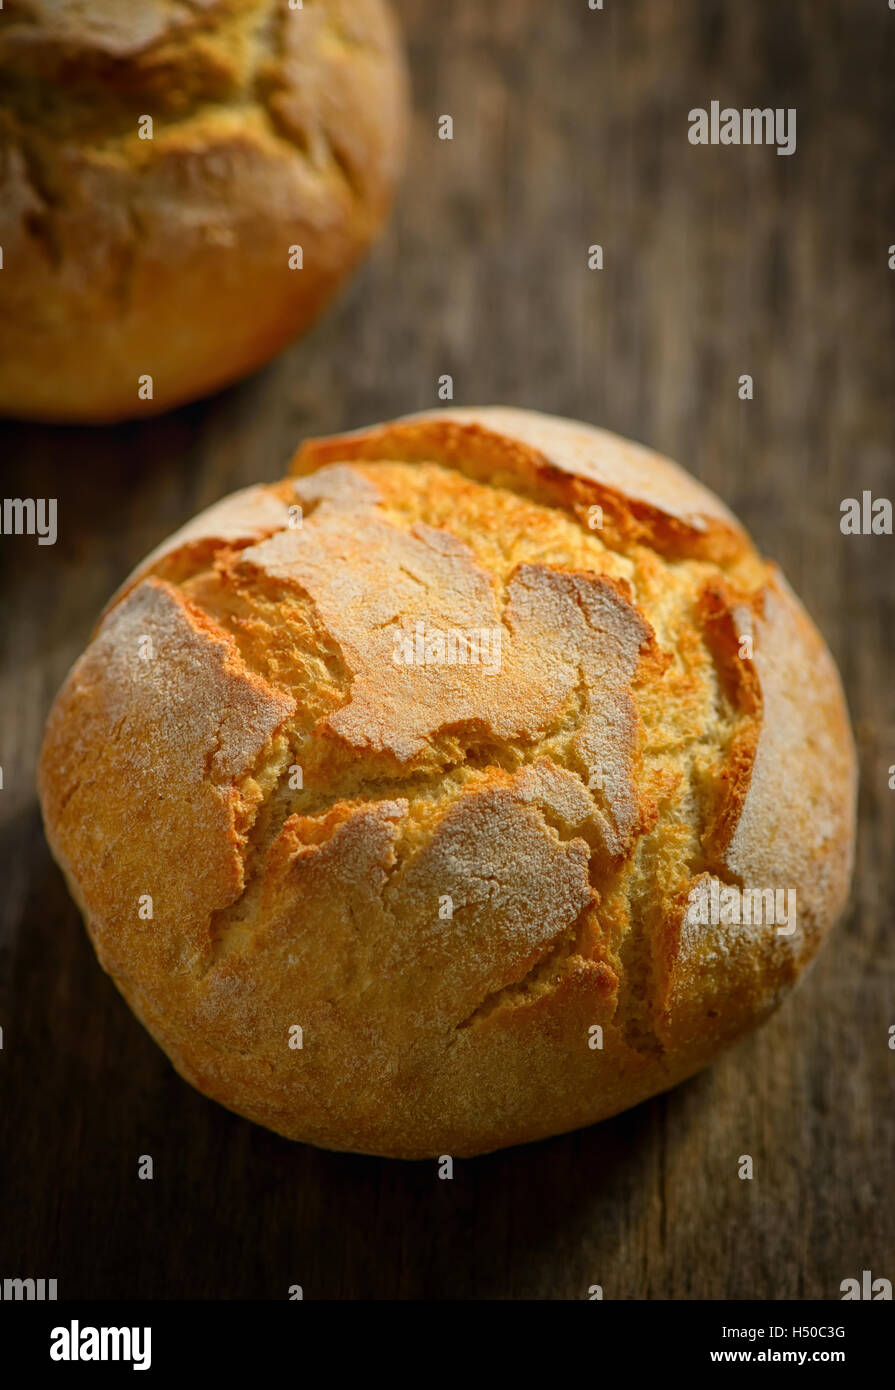 traditional homemade round bread on wooden table - Stock Image